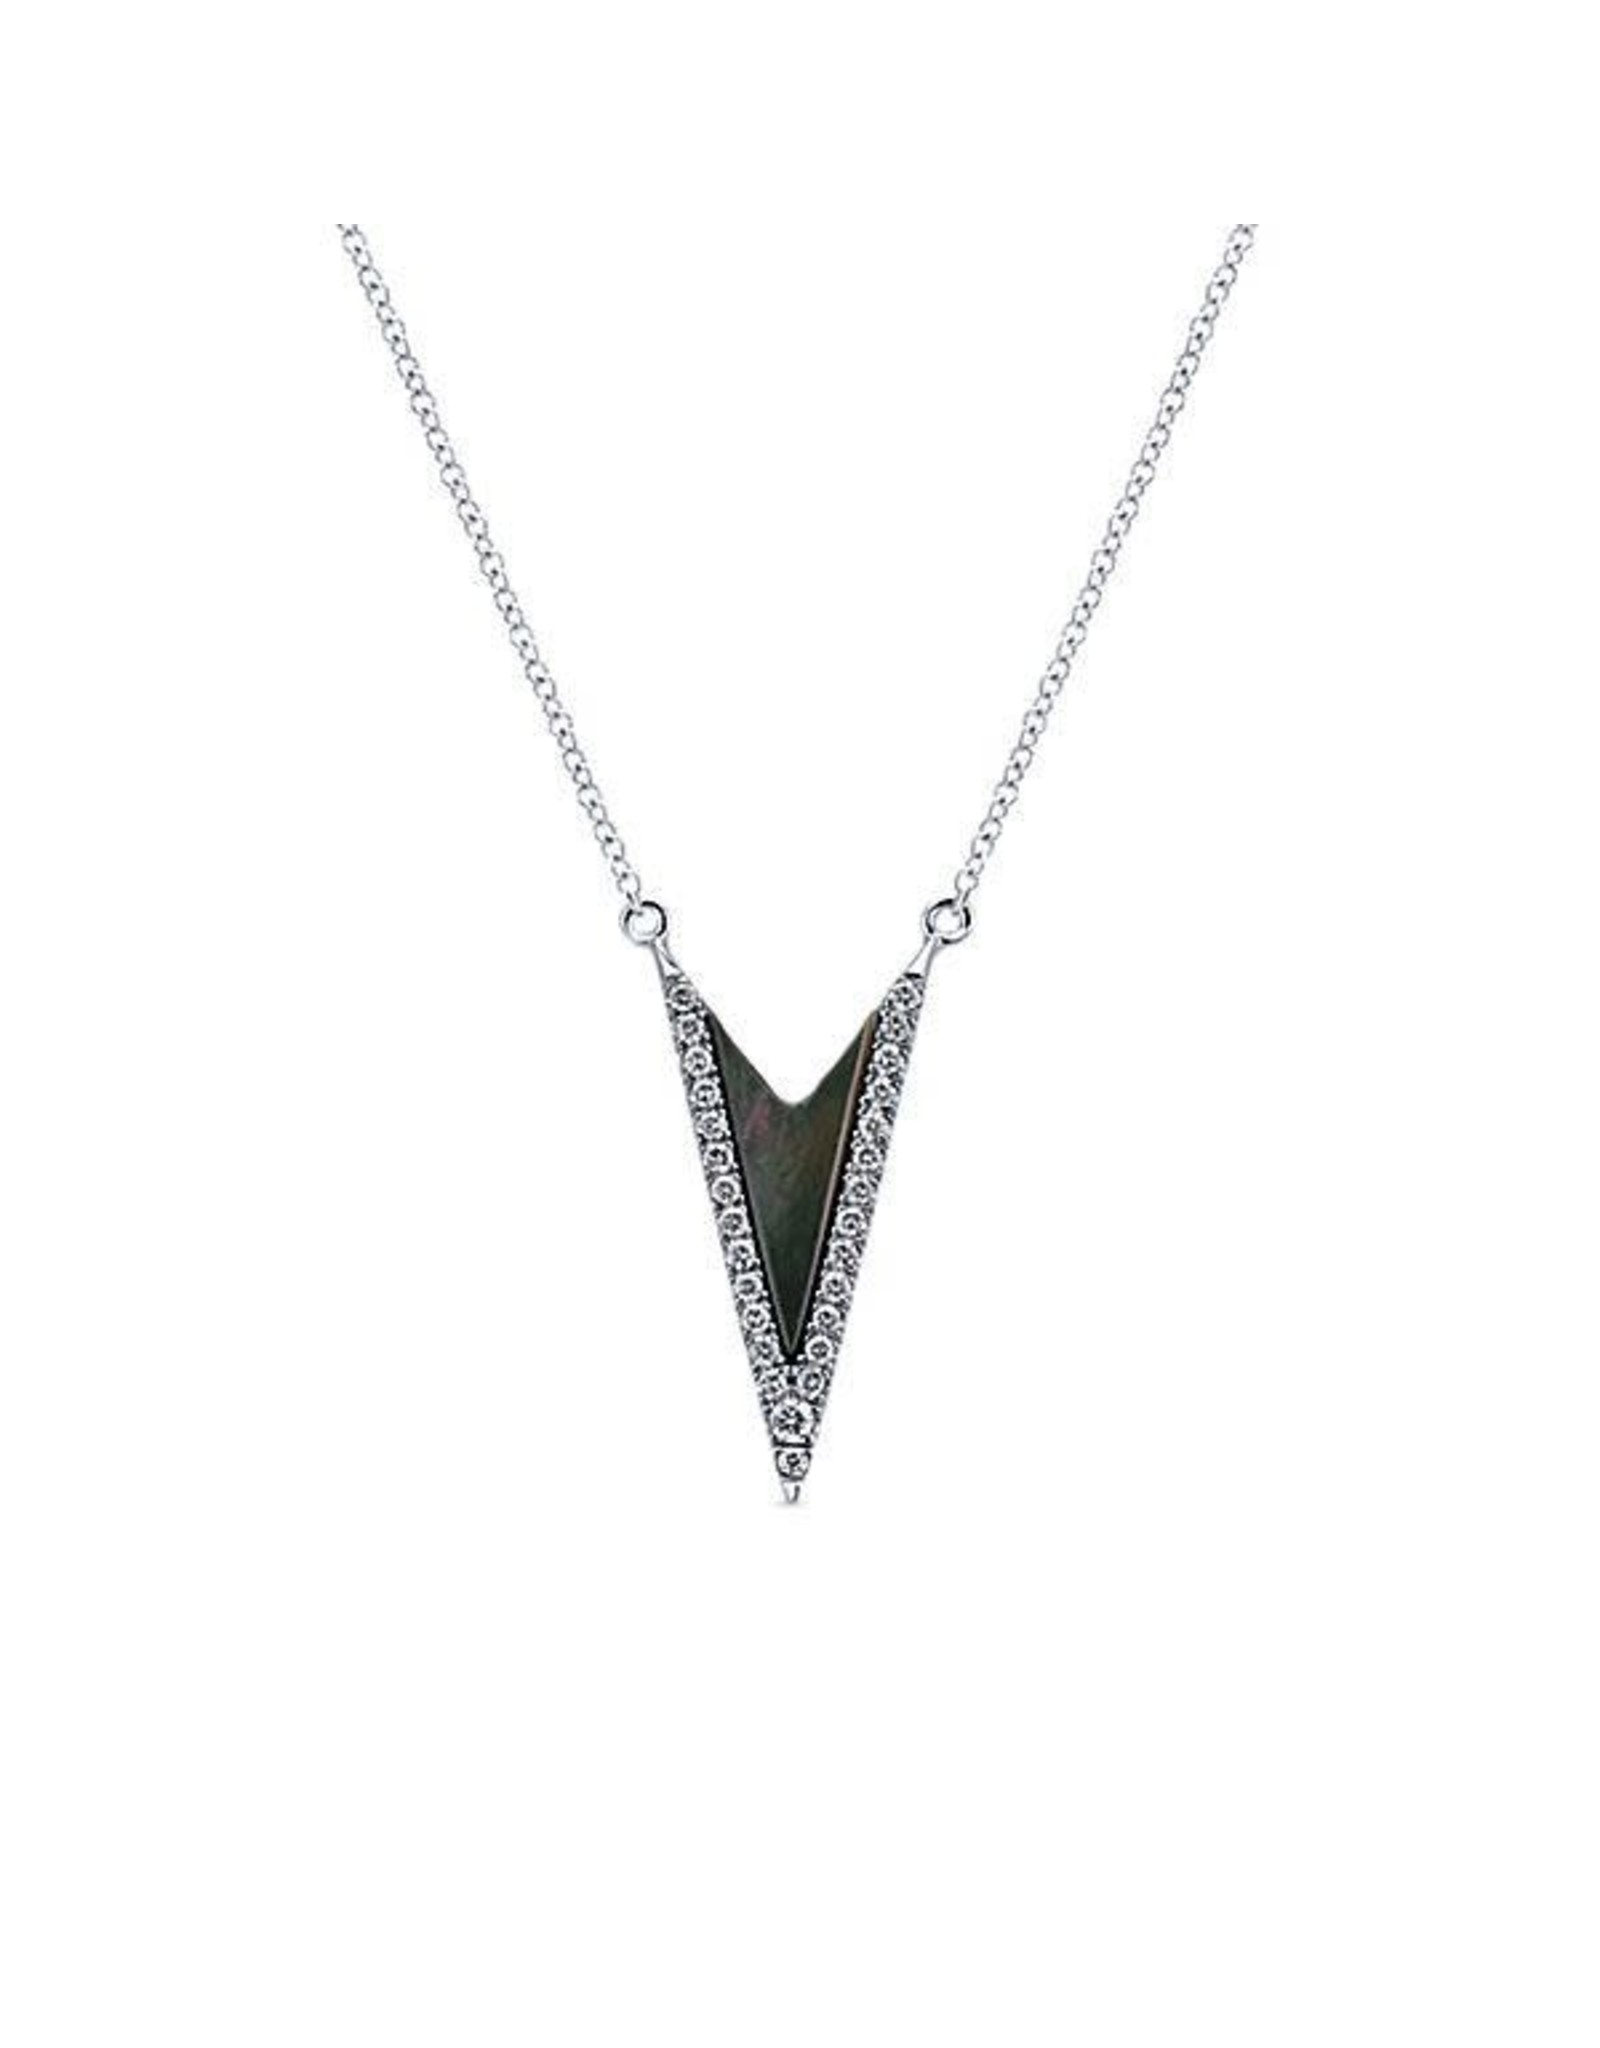 14K White Gold Black Mother of Pearl and Diamond Necklace, D: 0.15ct